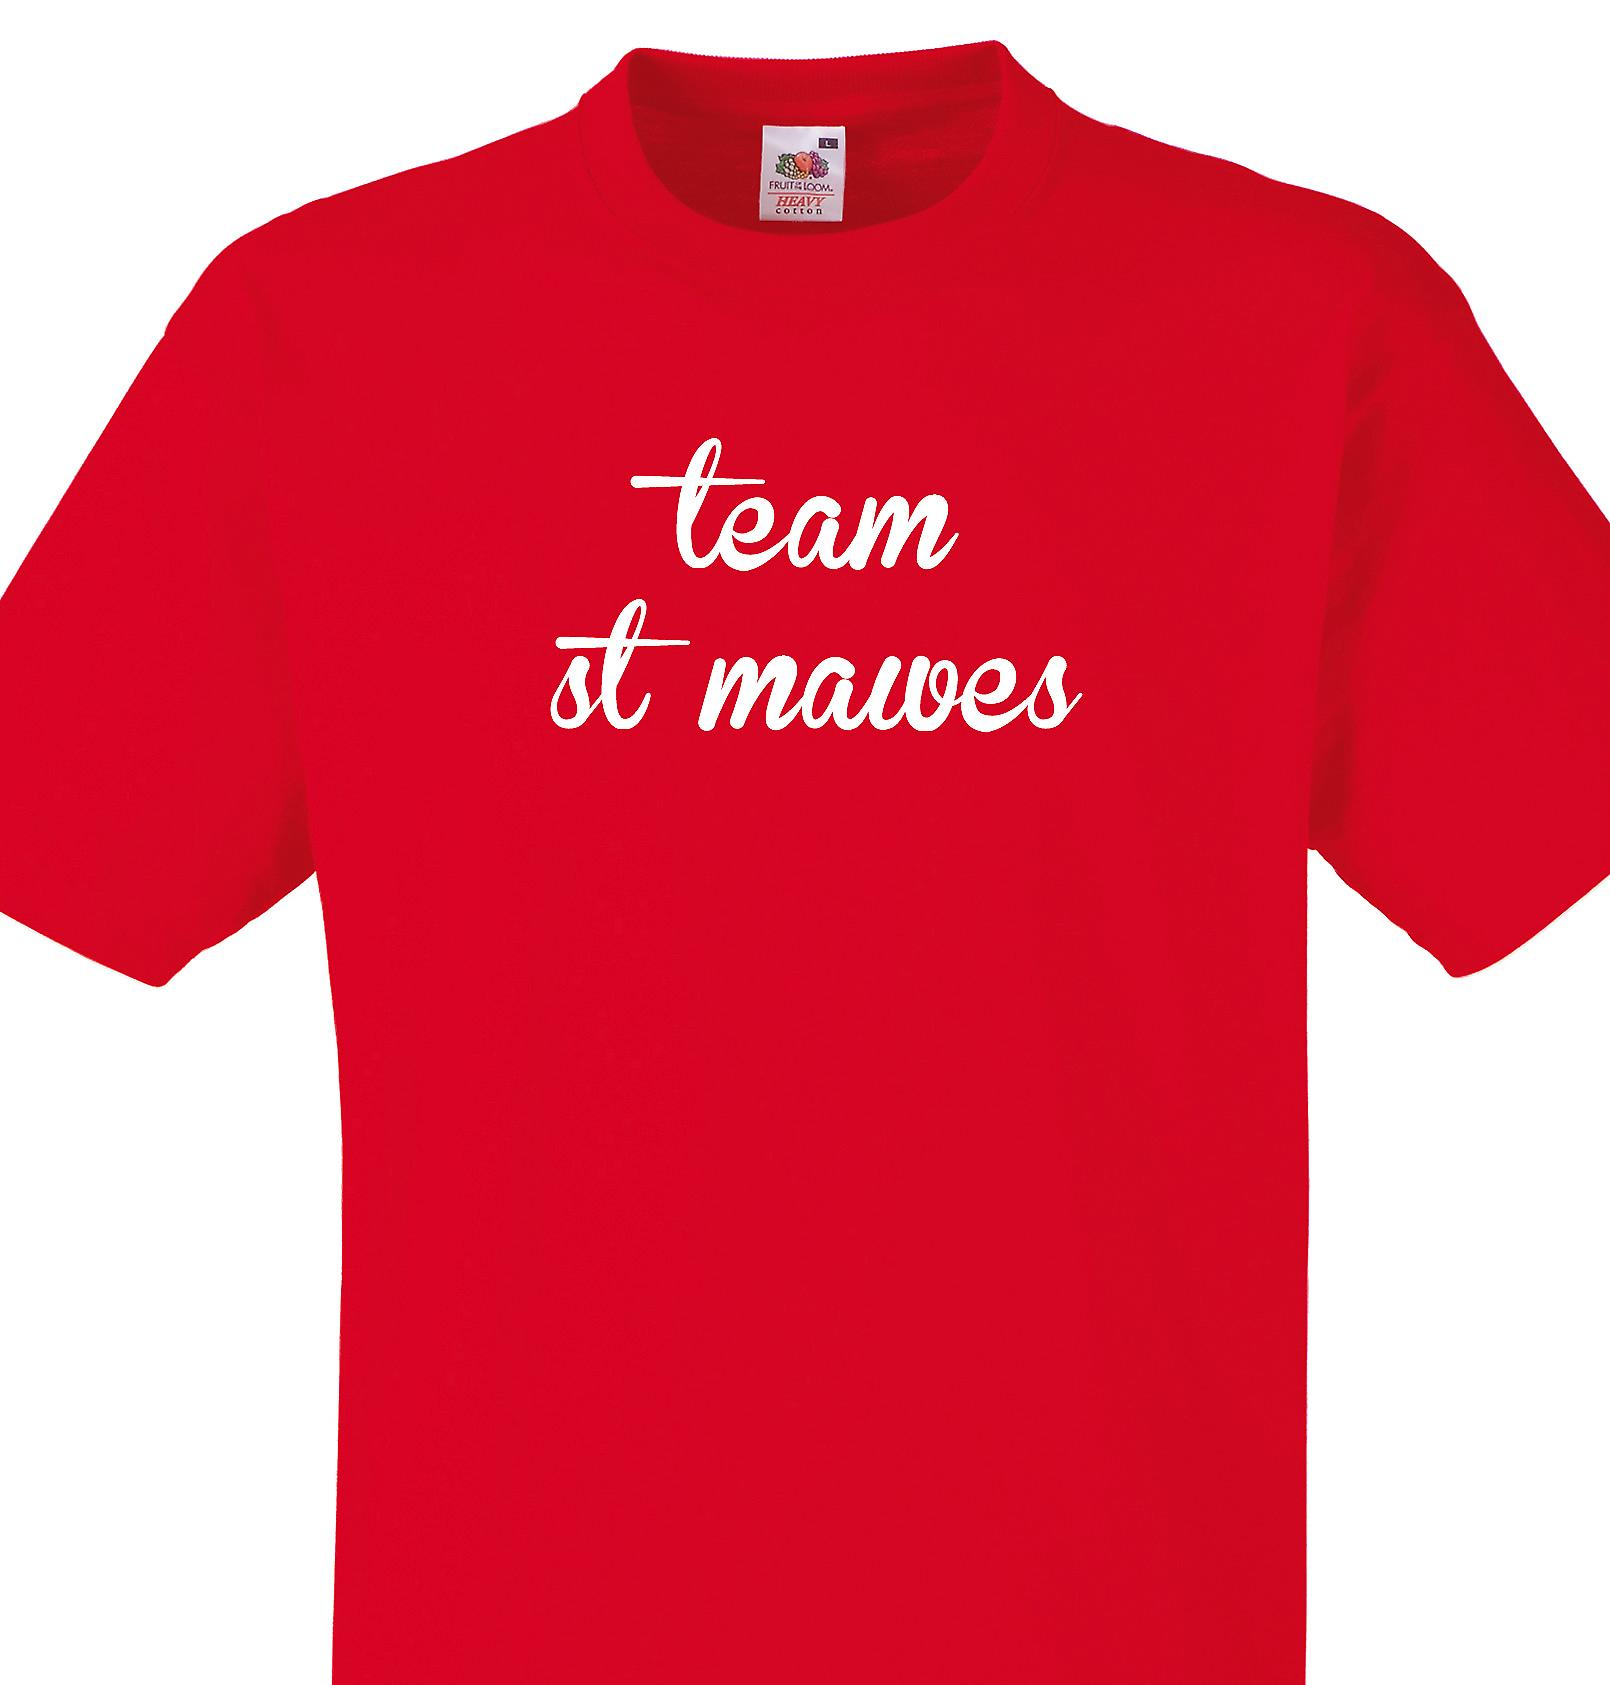 Team St mawes Red T shirt